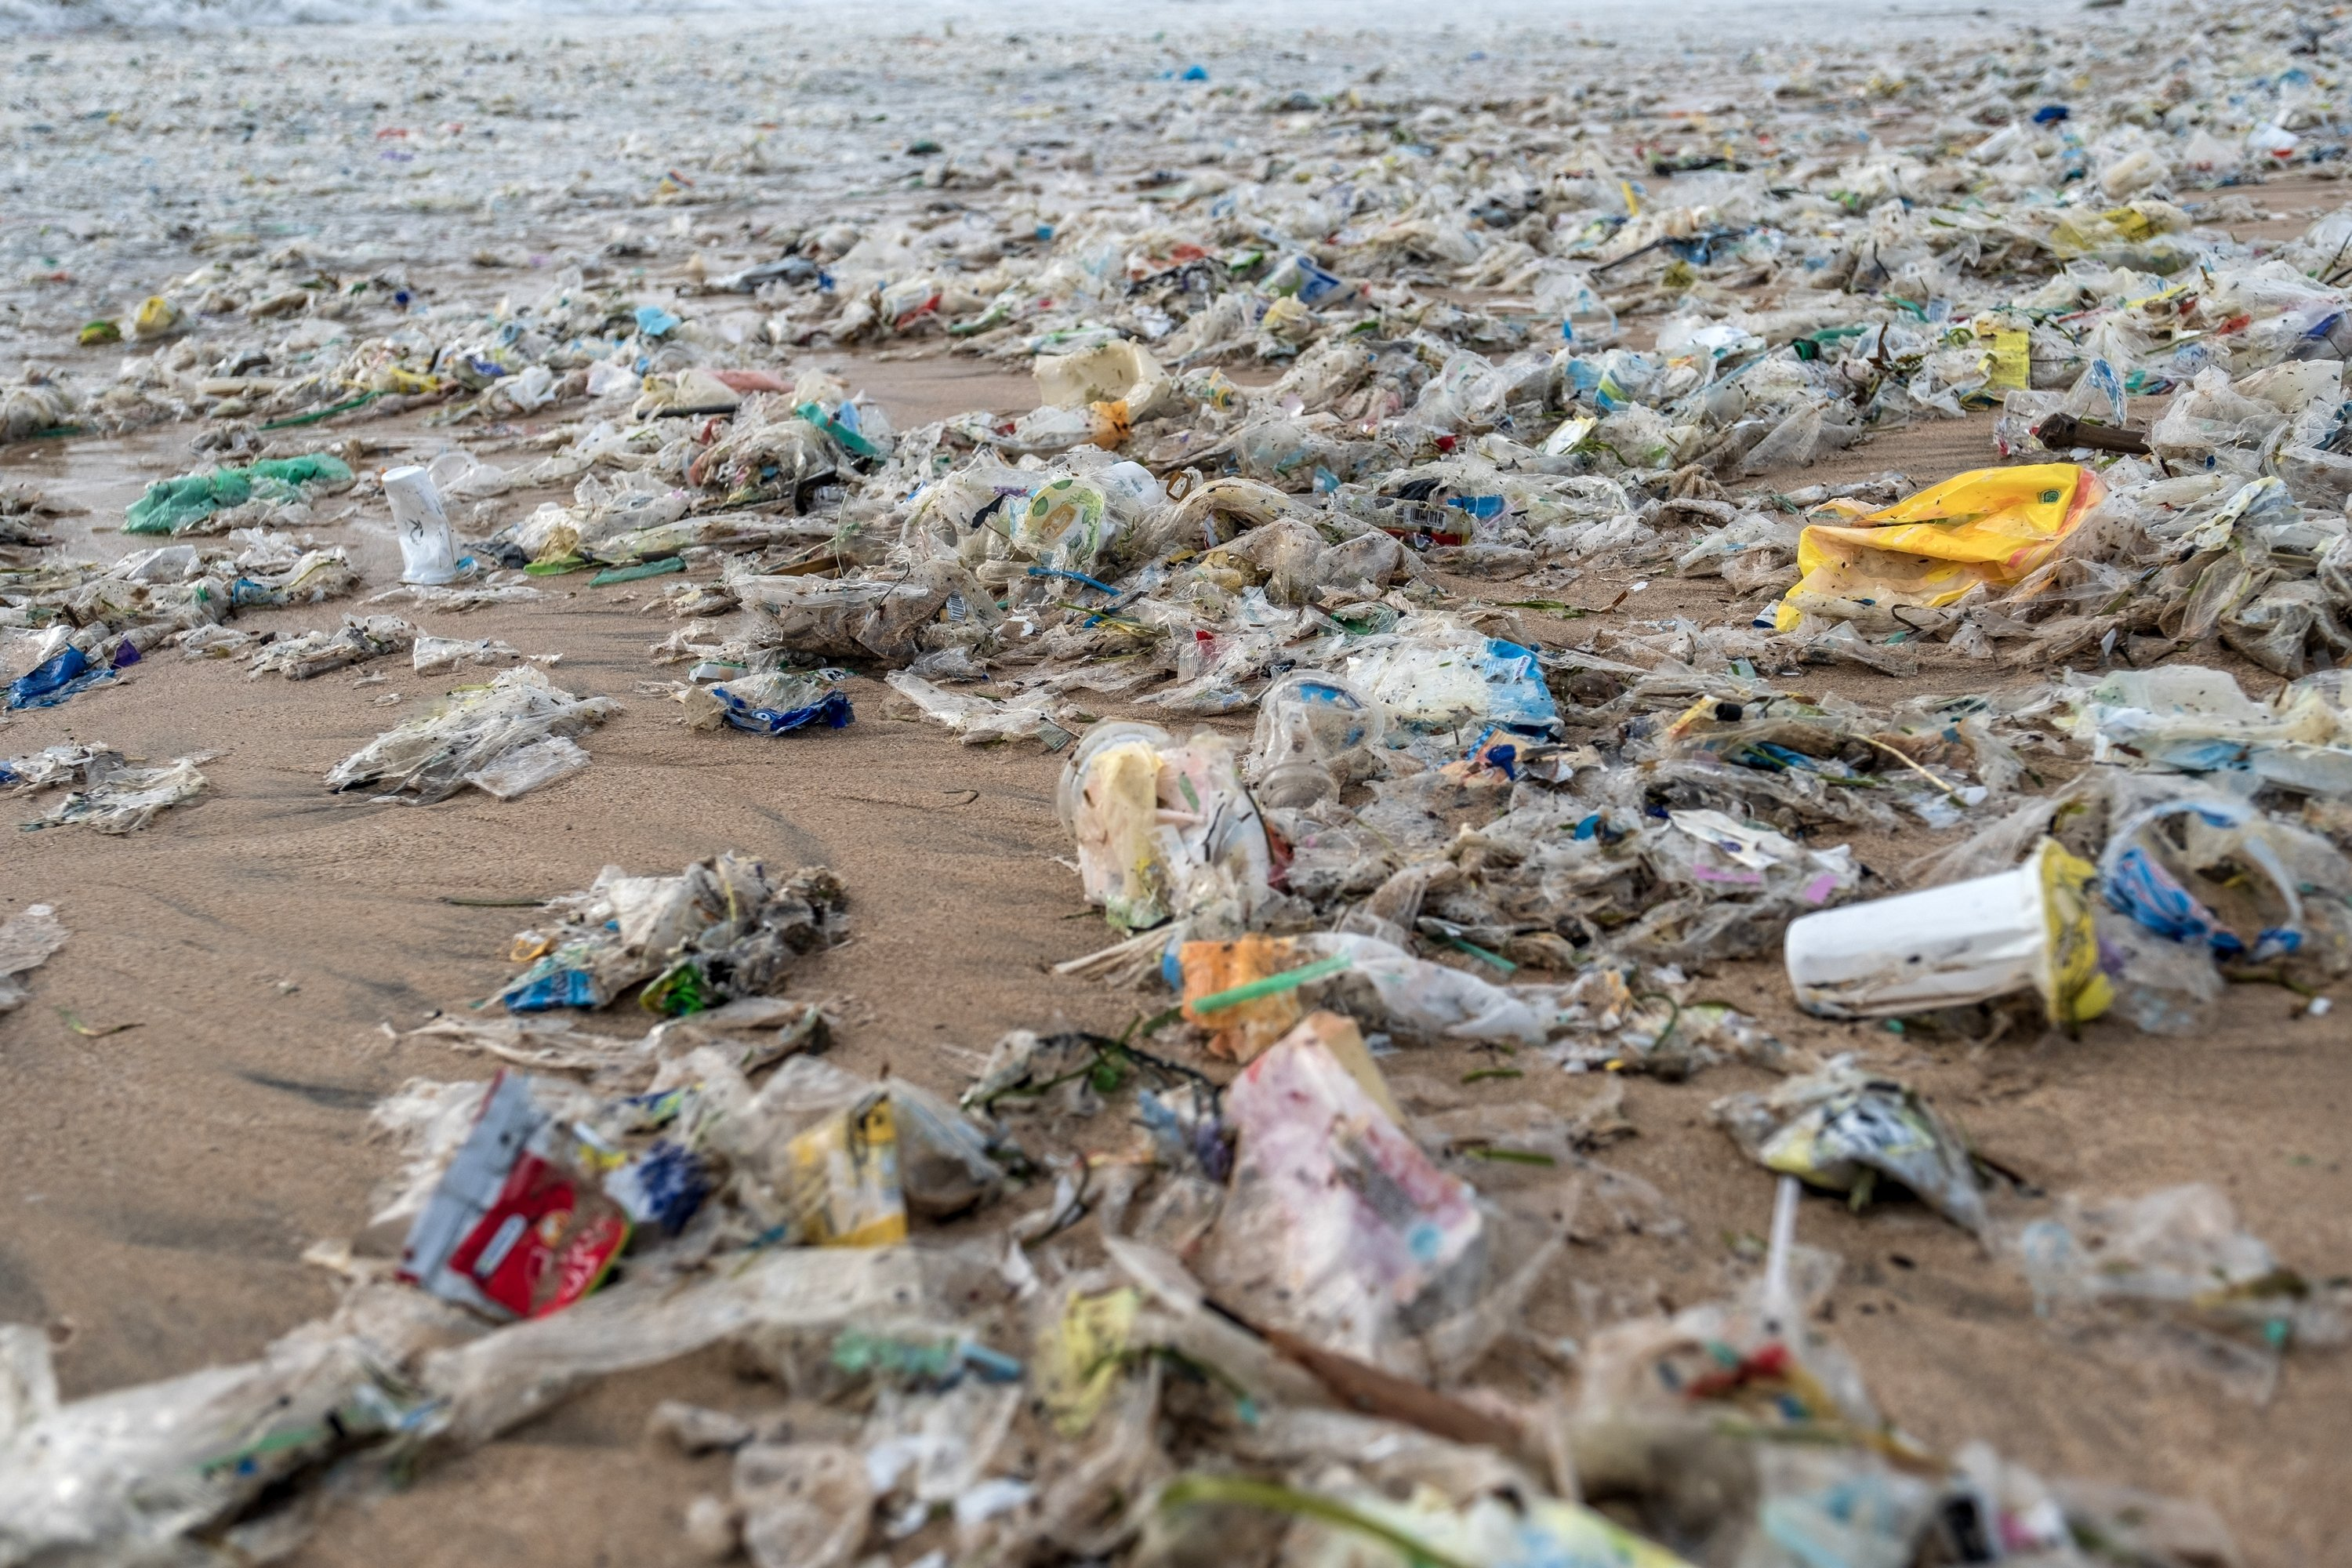 Plastic trash scattered on the beach which was brought in by the strong wave during the northwest monsoon season at Jimbaran beach, Bali, Indonesia, Jan. 27, 2021. (Photo by Getty Images)